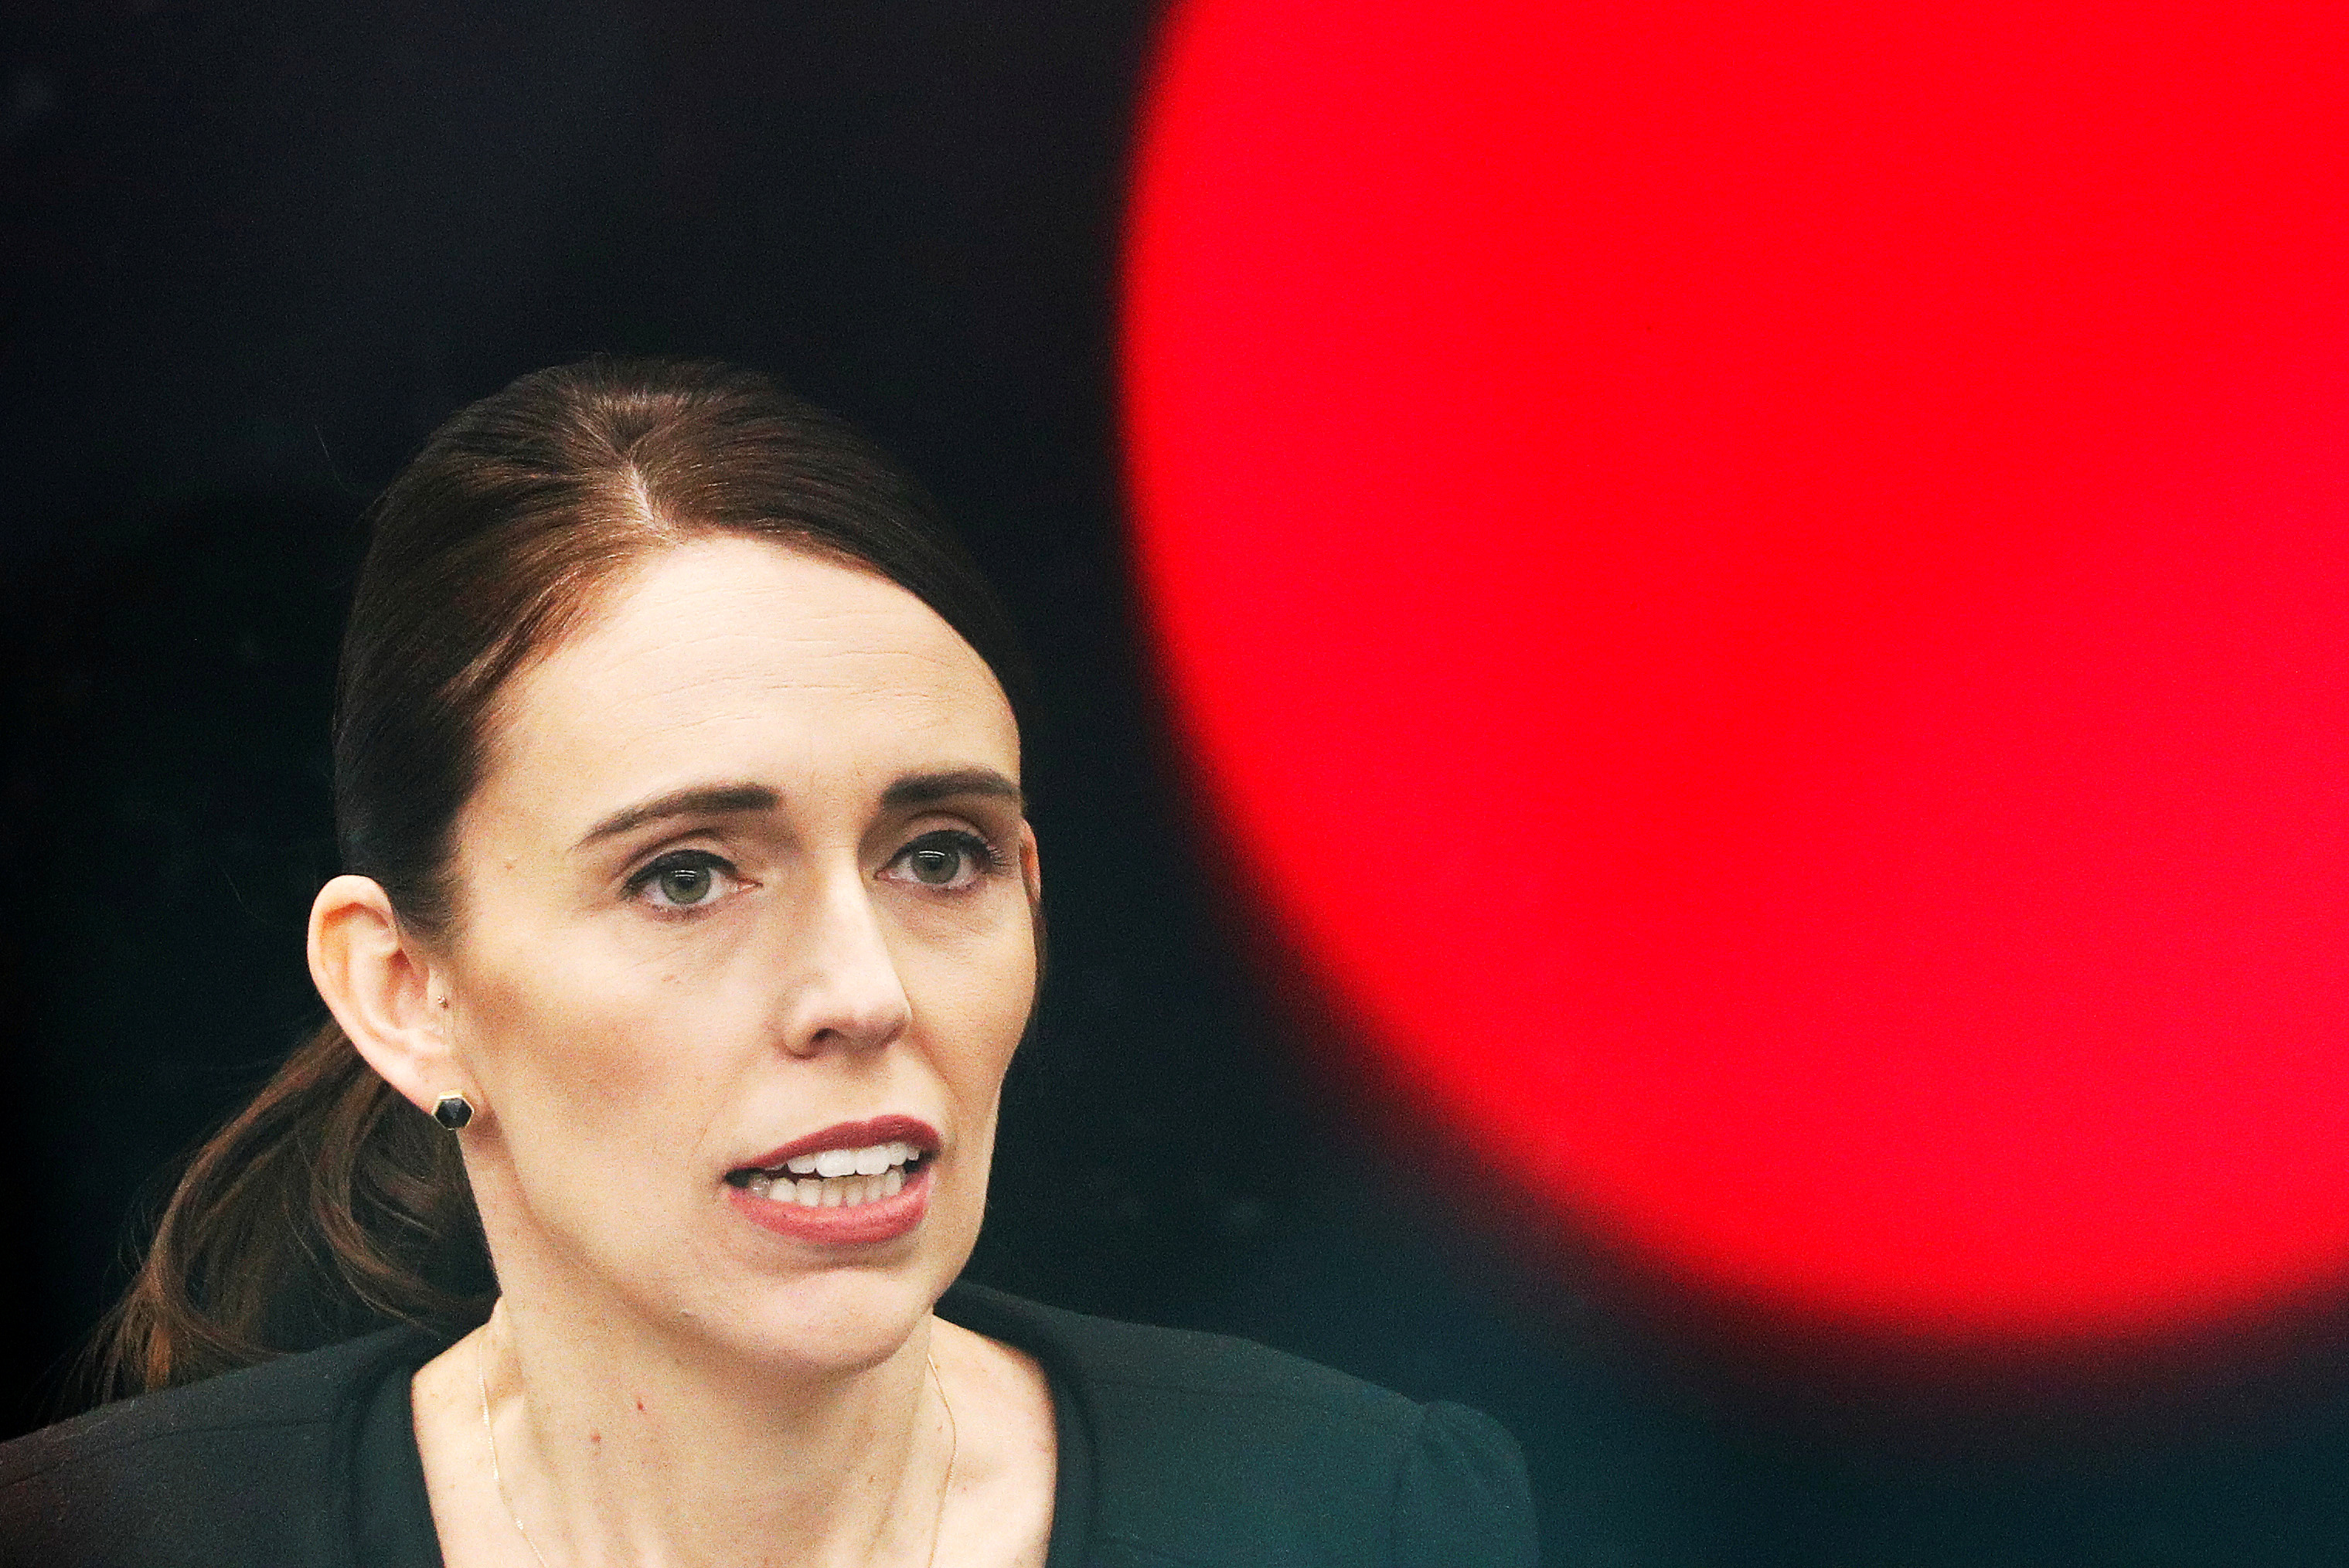 New Zealand PM says she will meet President Xi in China